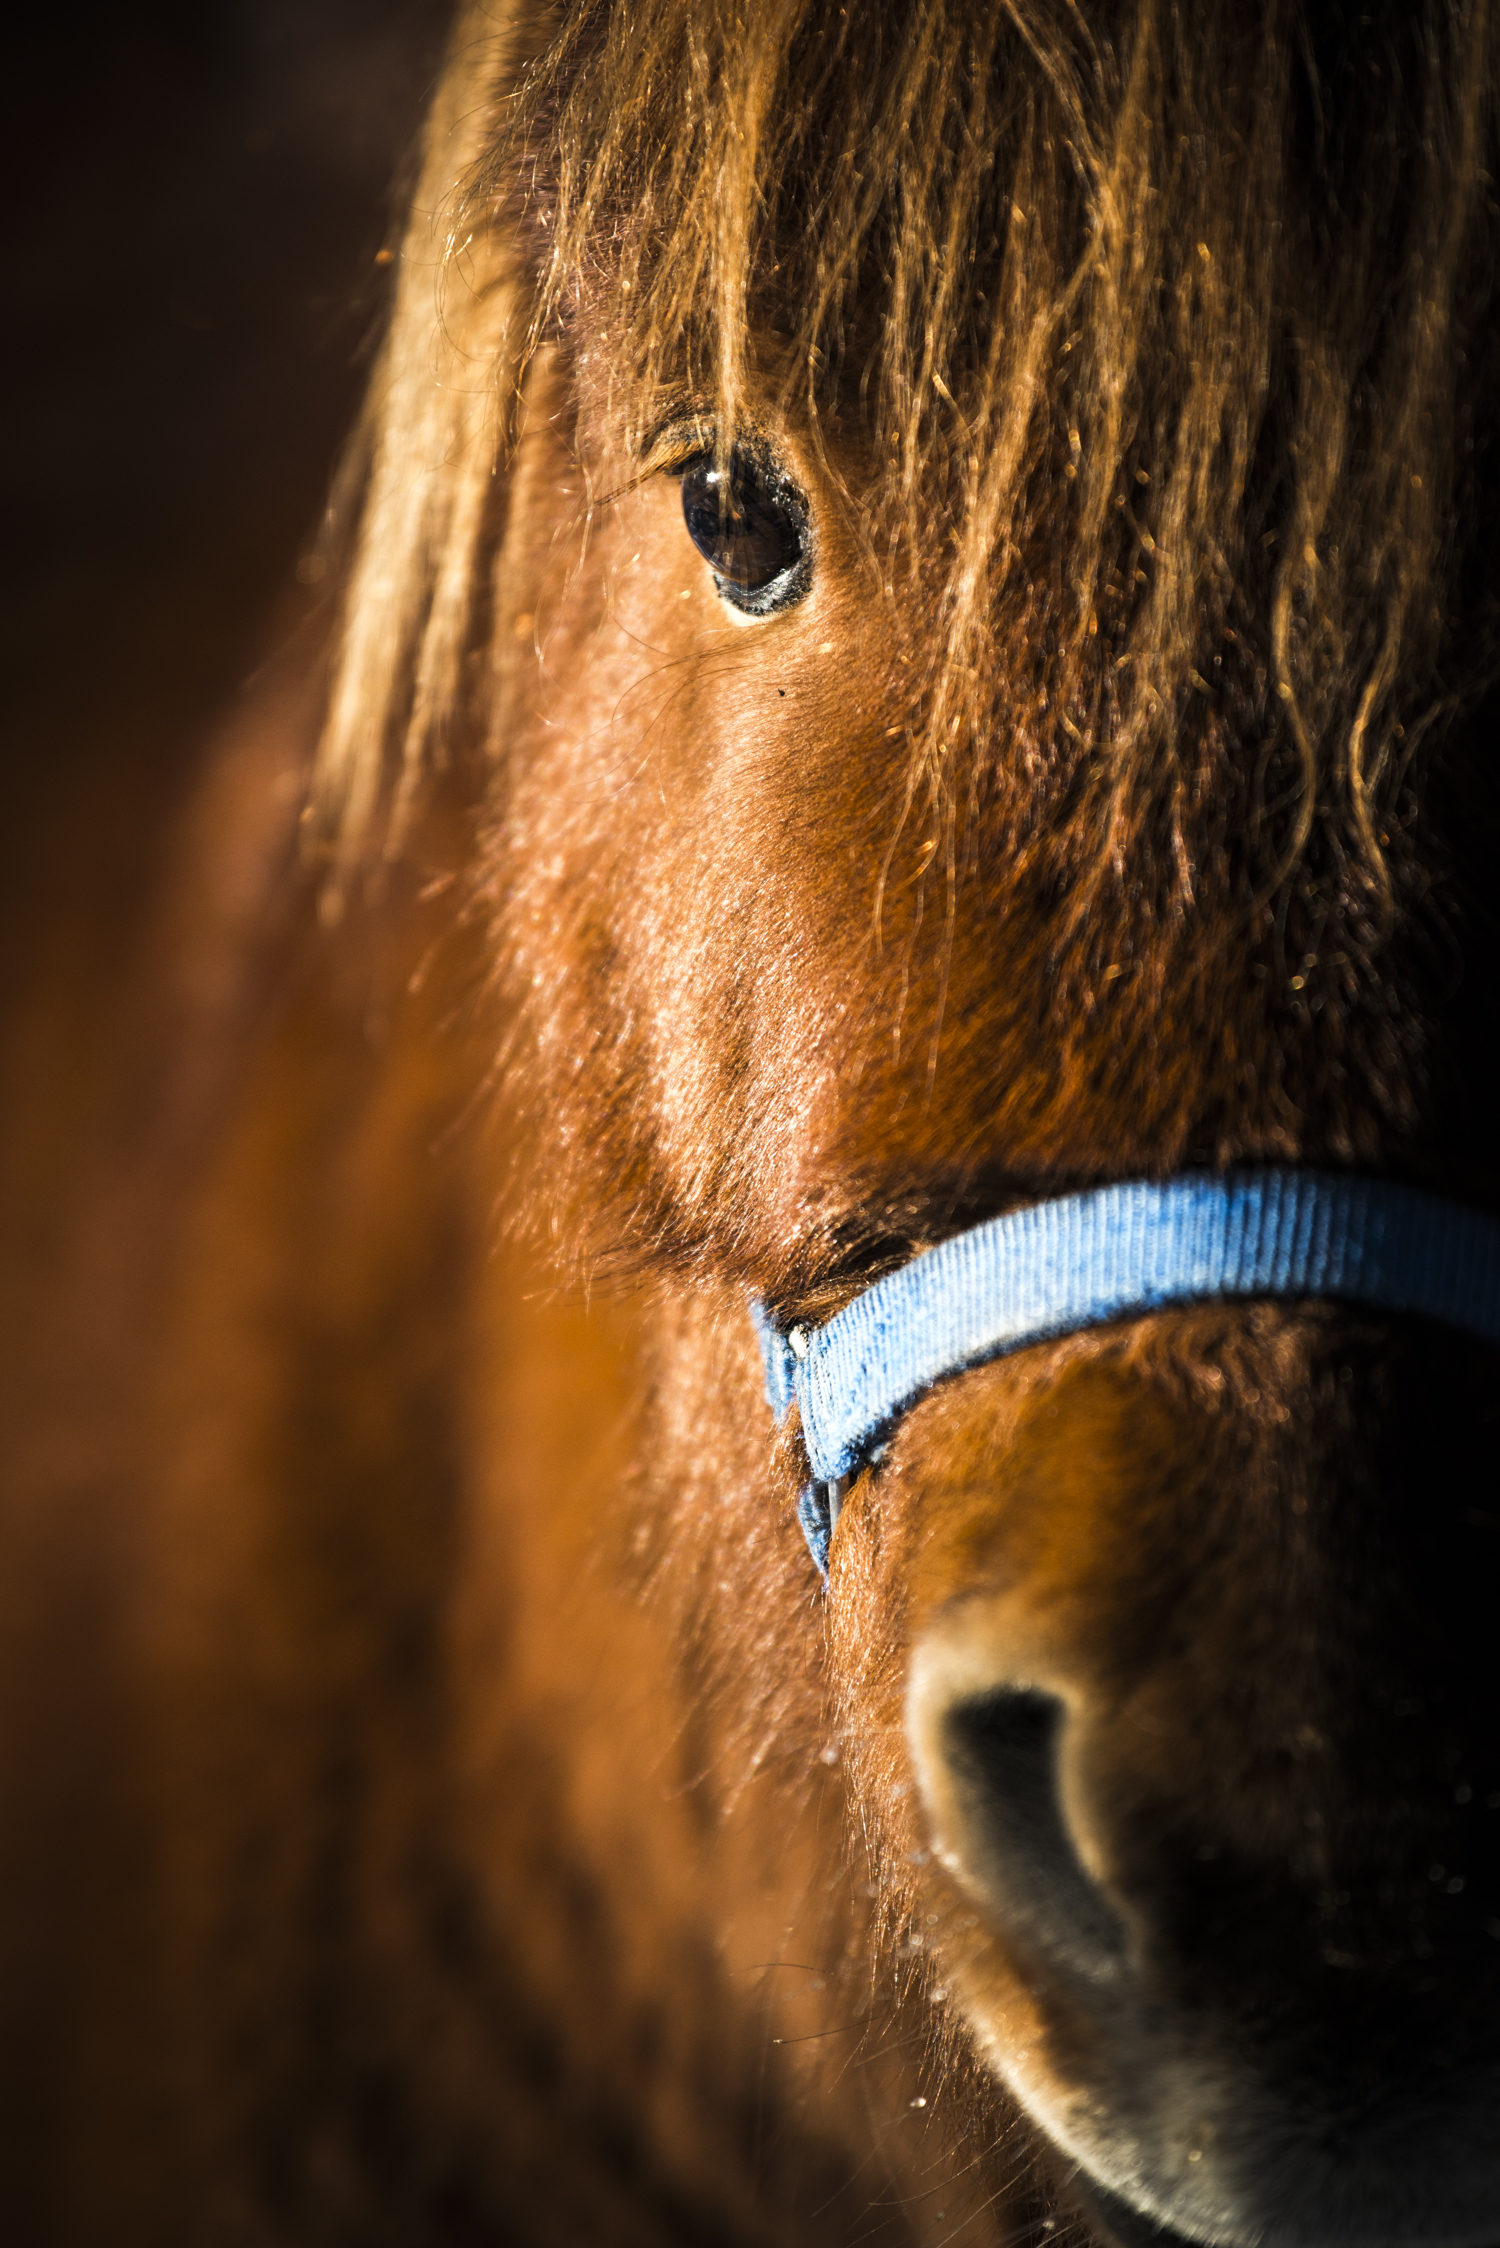 A horse gets close and personal - Banff, Alberta.